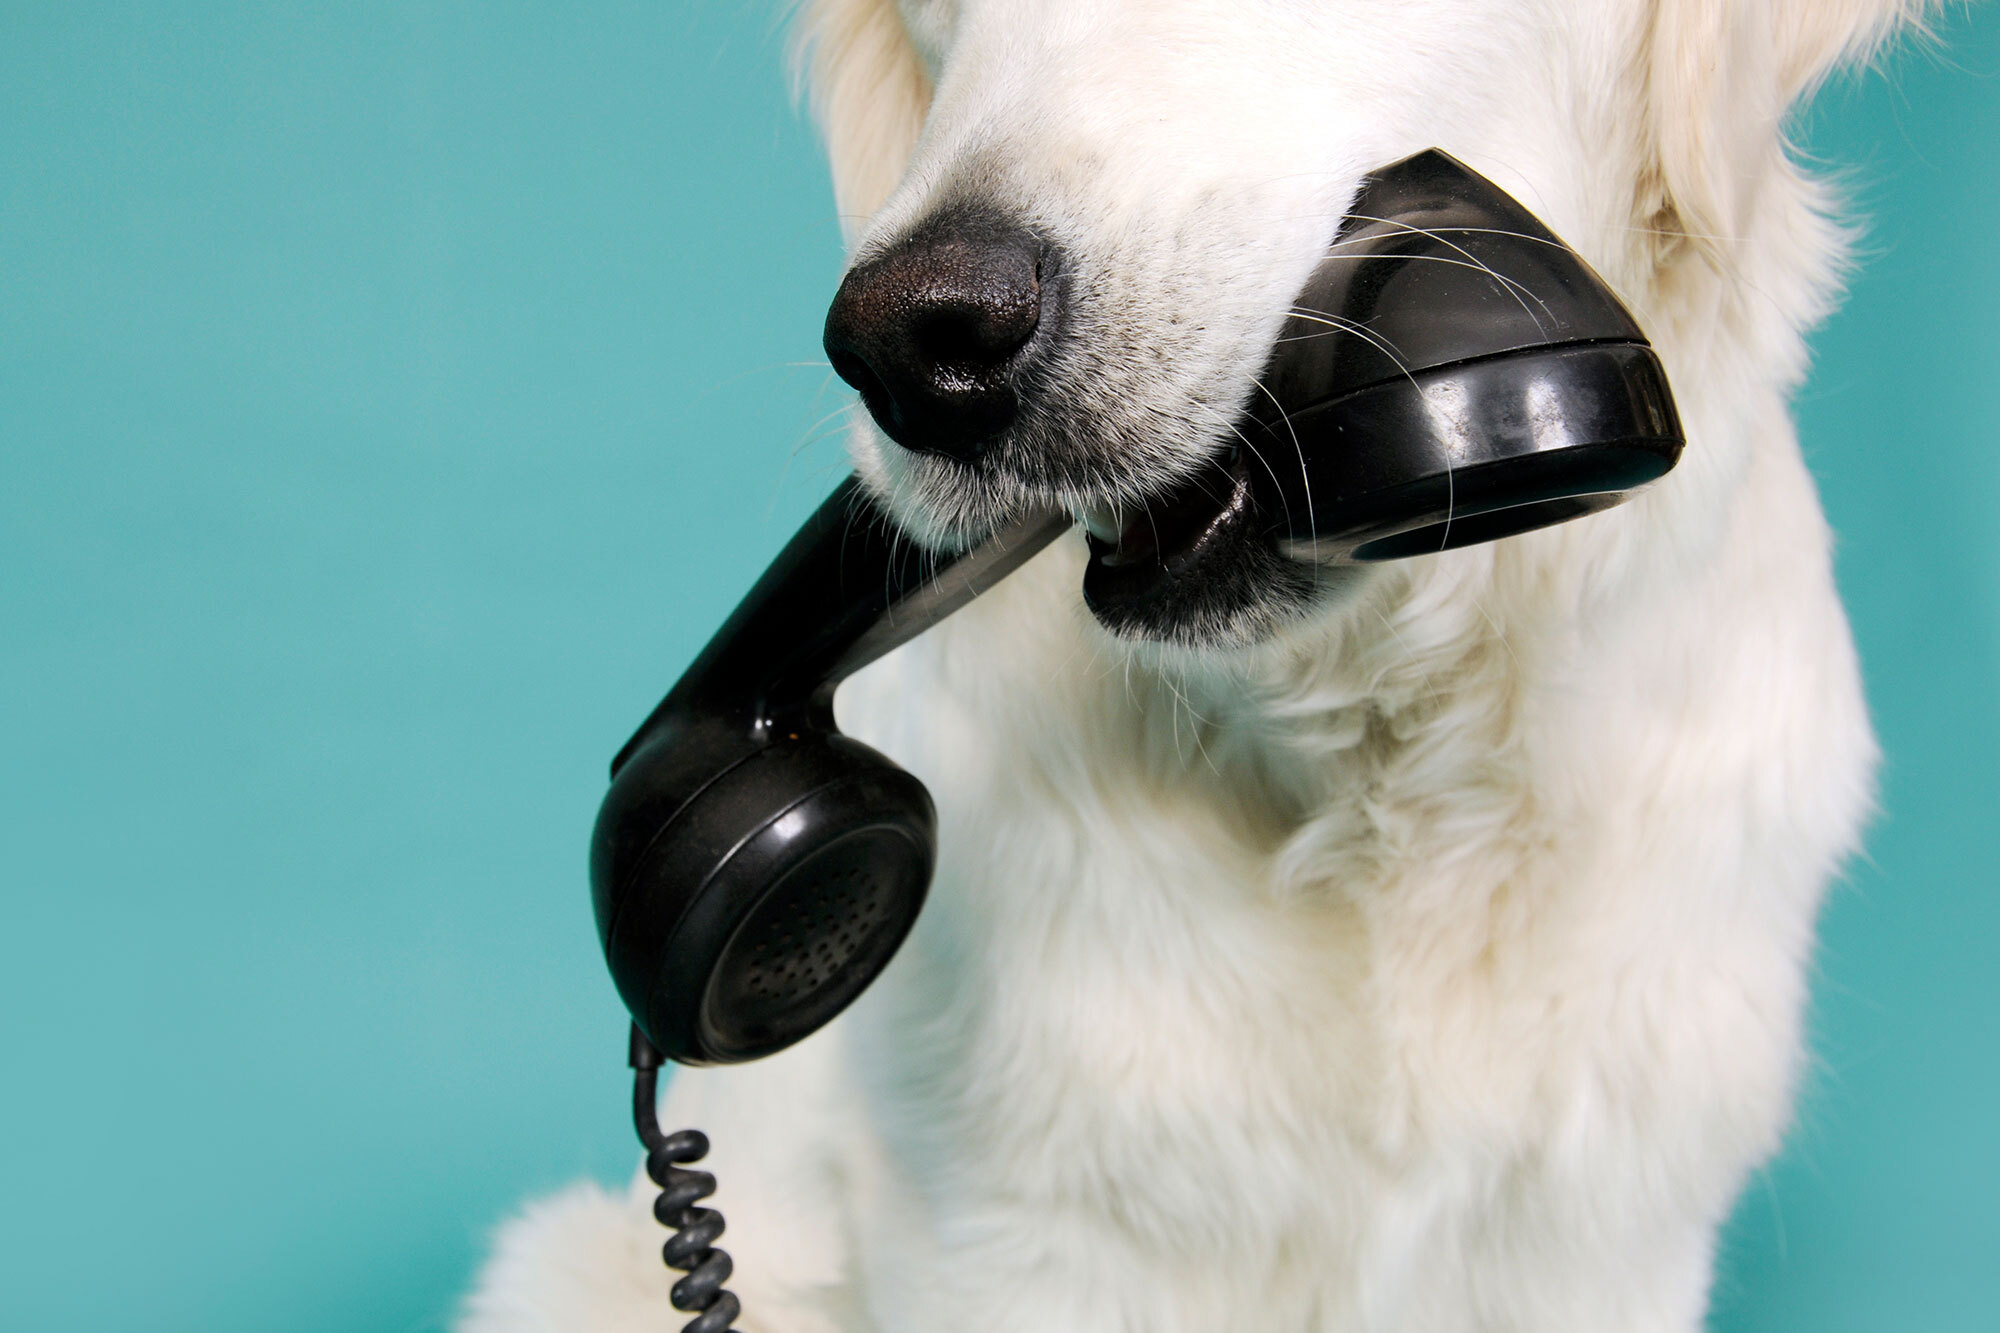 white dog holding a black phone in mouth